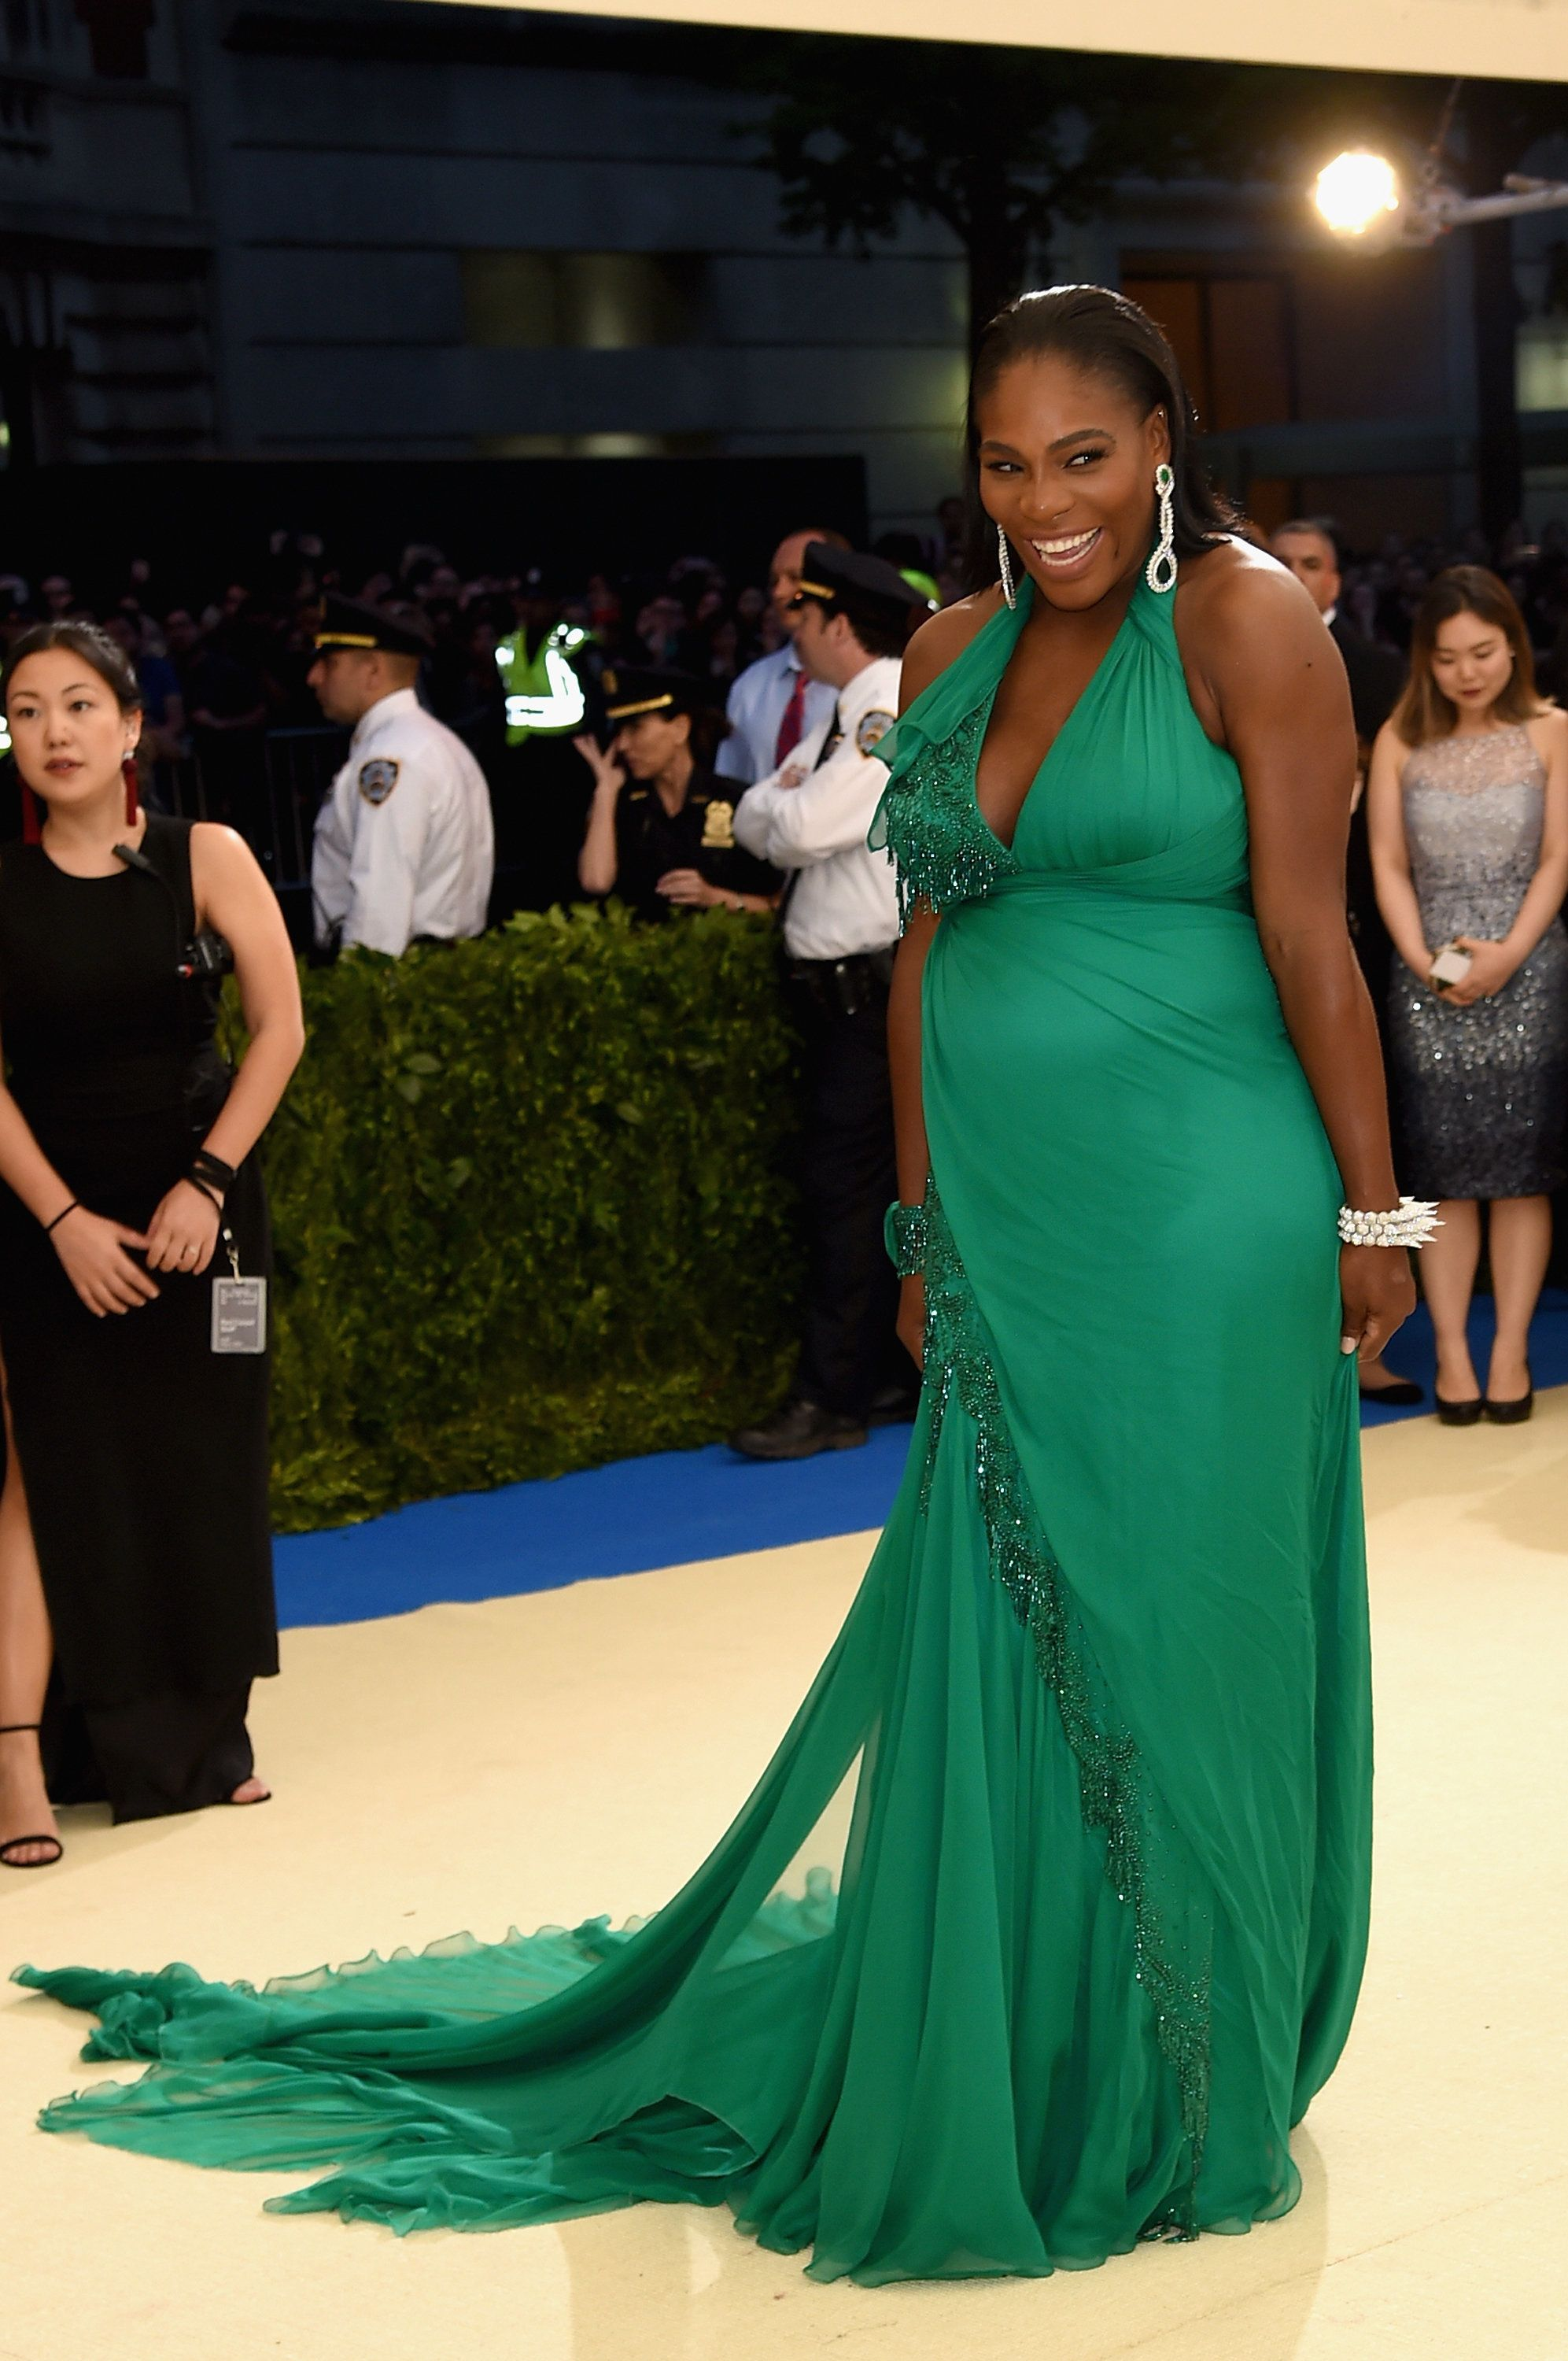 NEW YORK, NY - MAY 01:  Serena Williams attends the 'Rei Kawakubo/Comme des Garcons: Art Of The In-Between' Costume Institute Gala at Metropolitan Museum of Art on May 1, 2017 in New York City.  (Photo by Jamie McCarthy/FilmMagic)